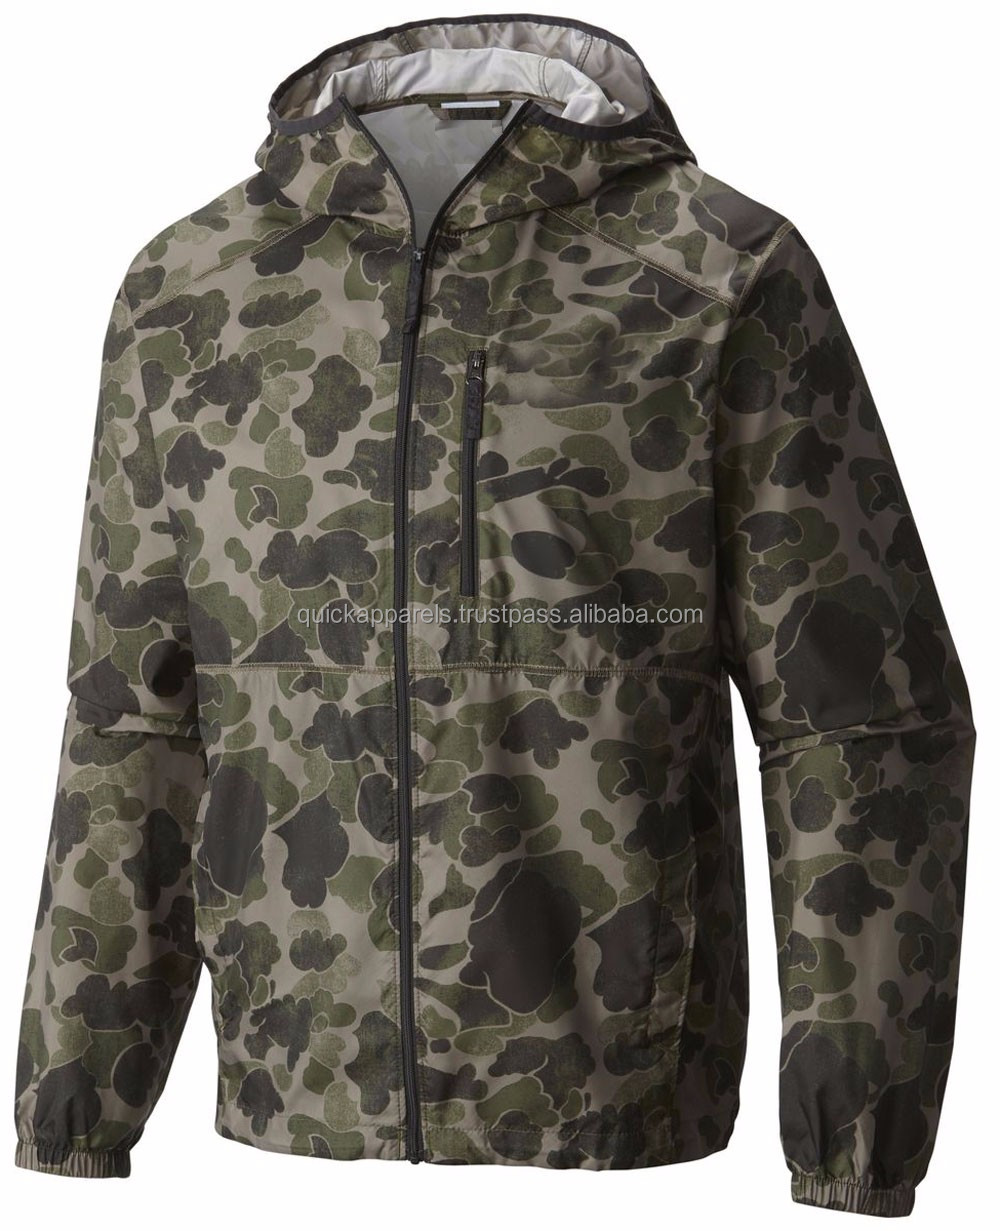 Lightweight woven camo printing windbreaker jacket